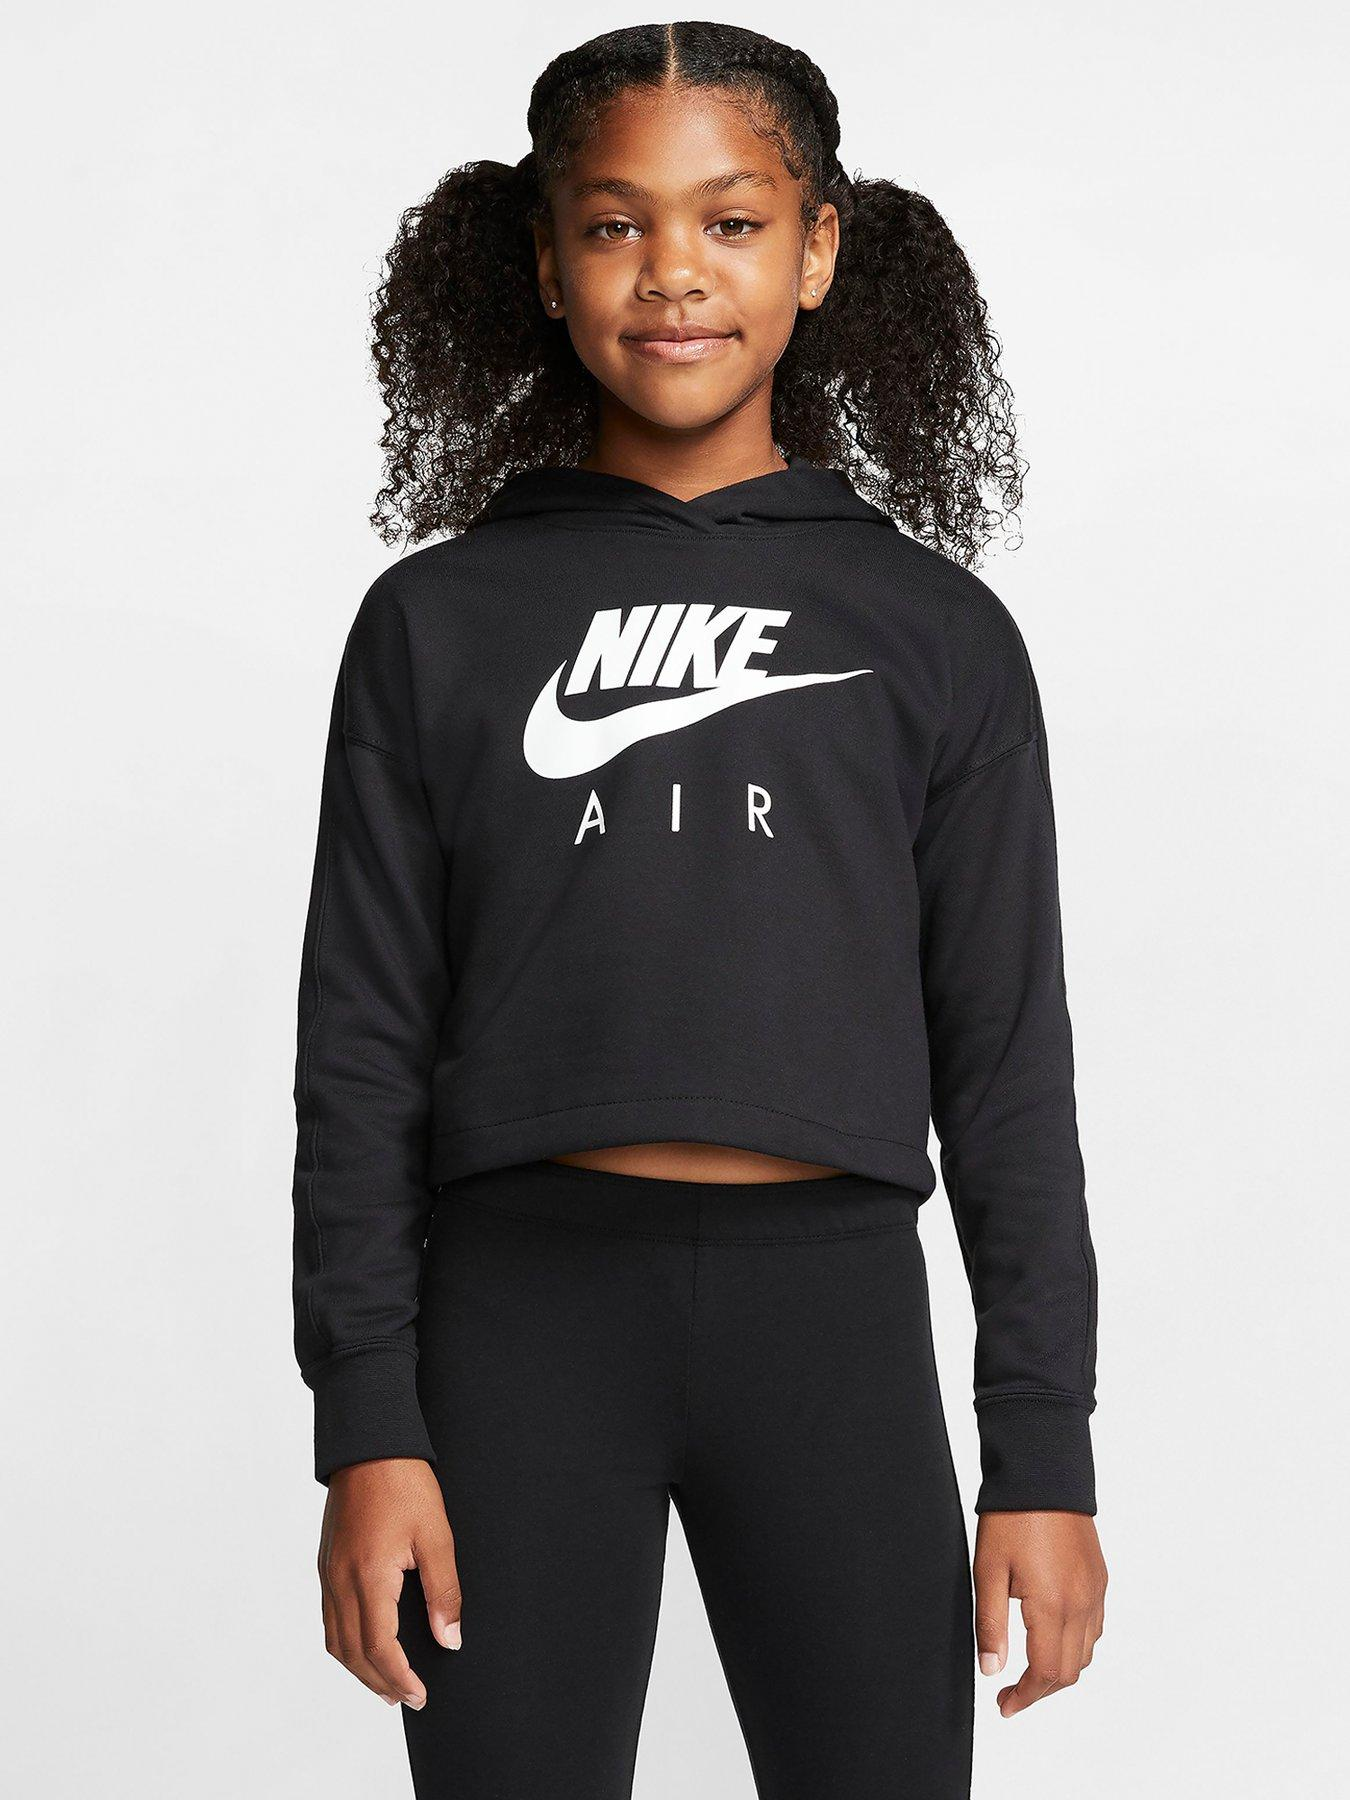 Air cotton mix cropped hoodie, 6 16